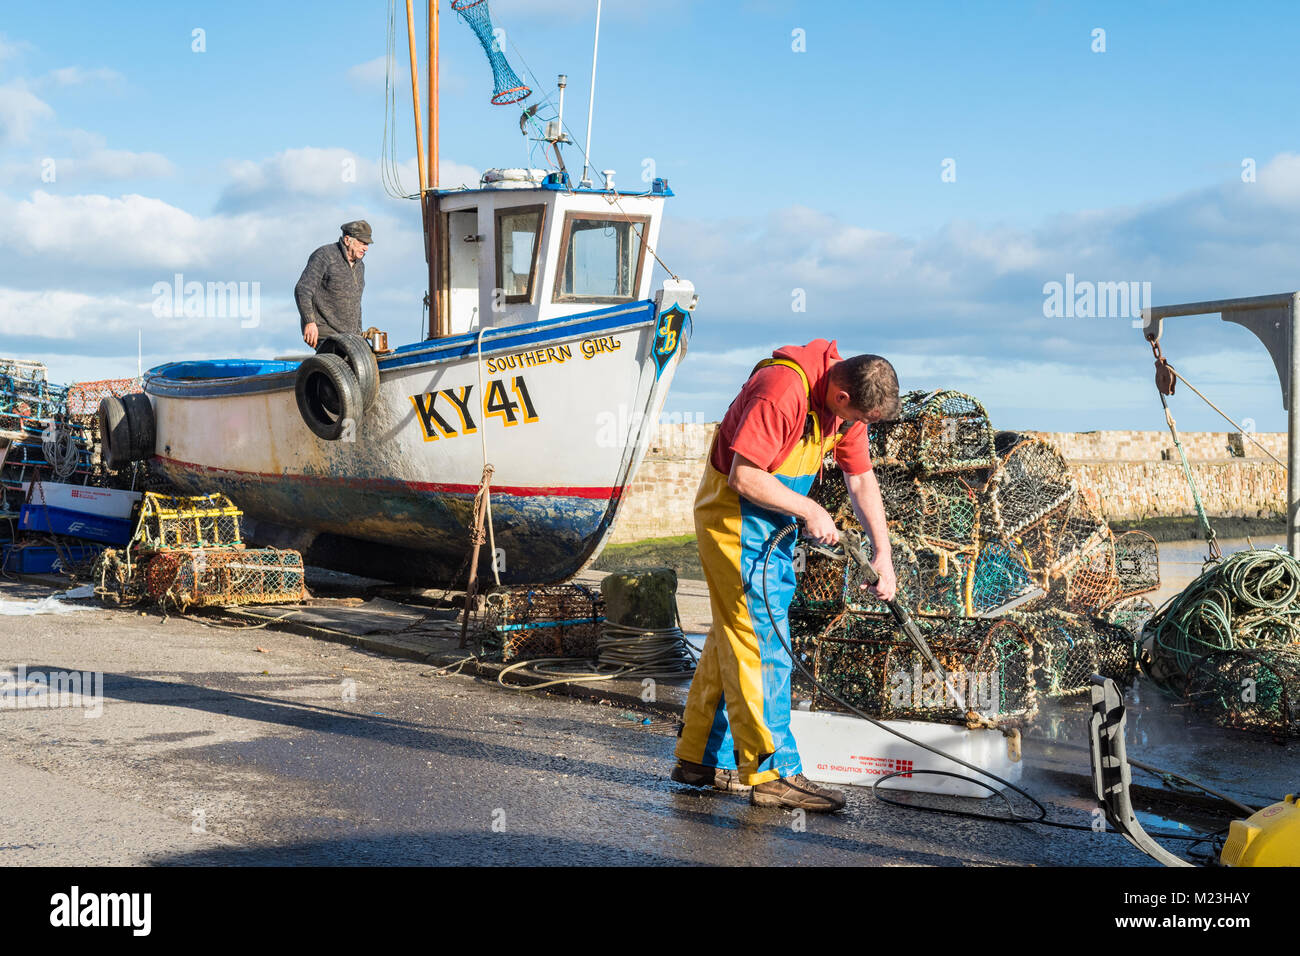 Fisherman cleaning lobster pots and small potter fishing boat at St Andrews Harbour, St Andrews, Scotland, UK - Stock Image